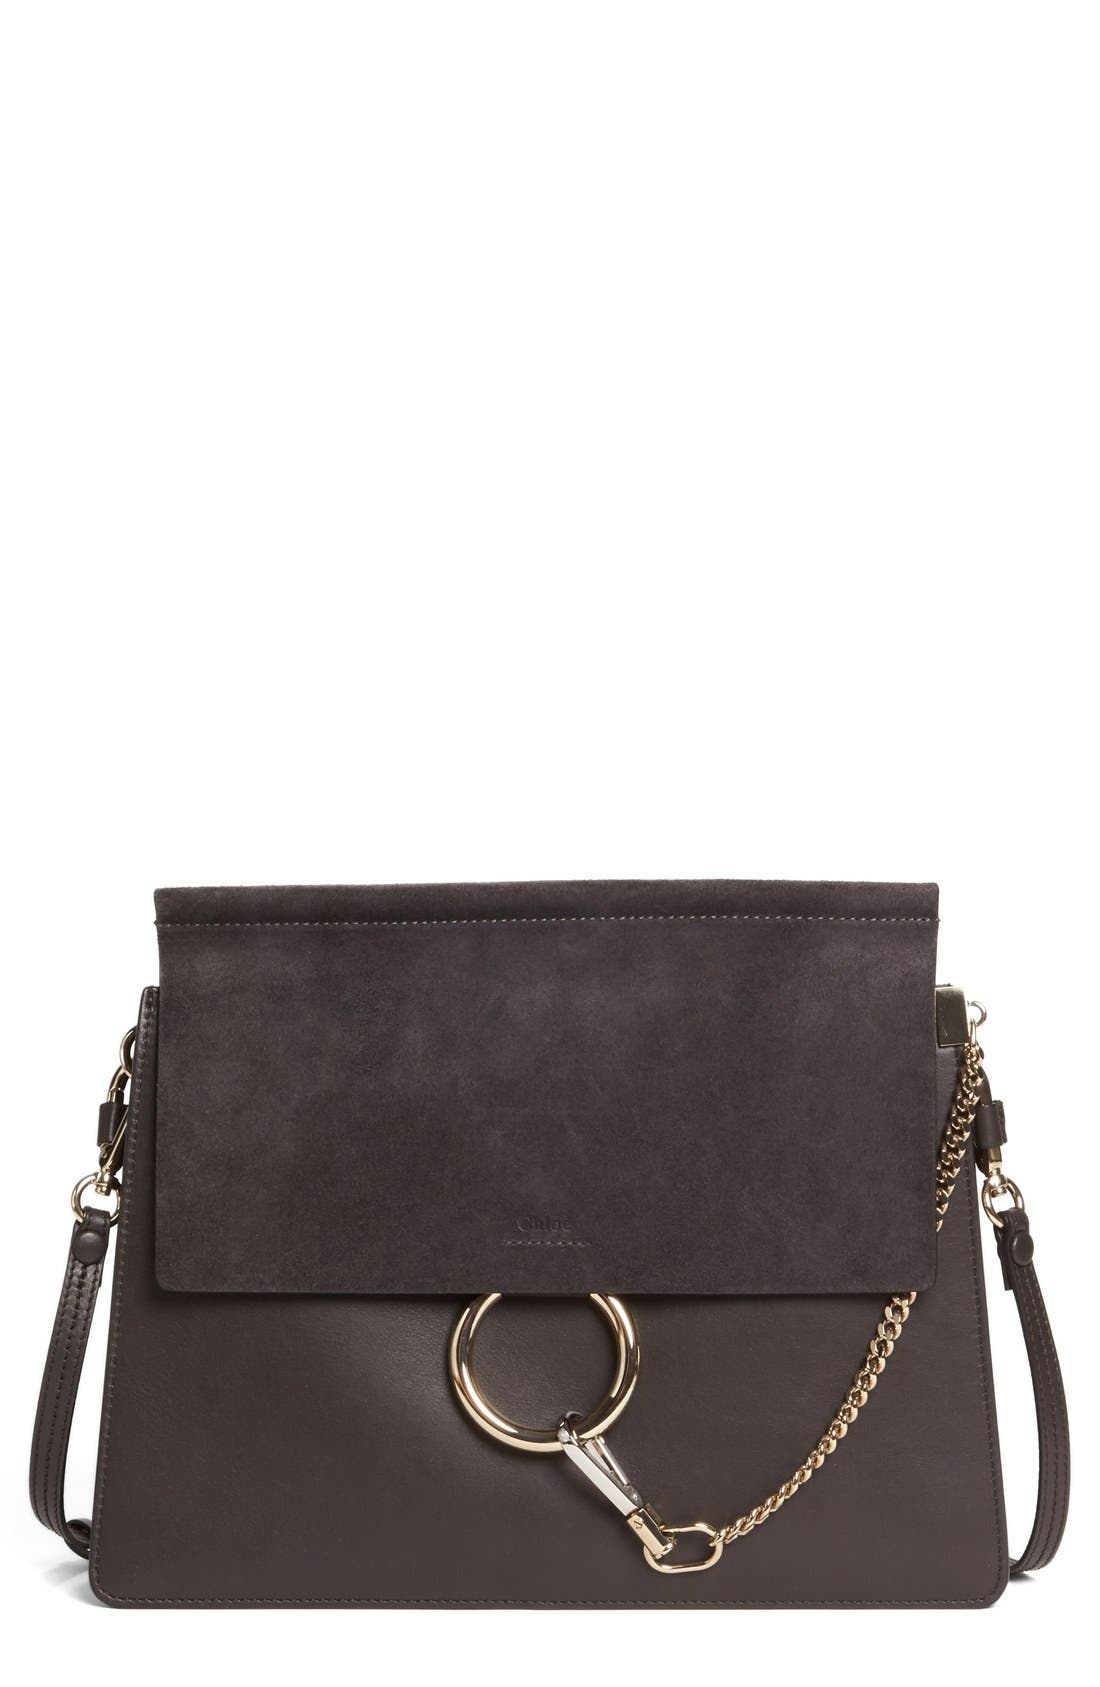 Chloé Faye Suede & Leather Shoulder Bag